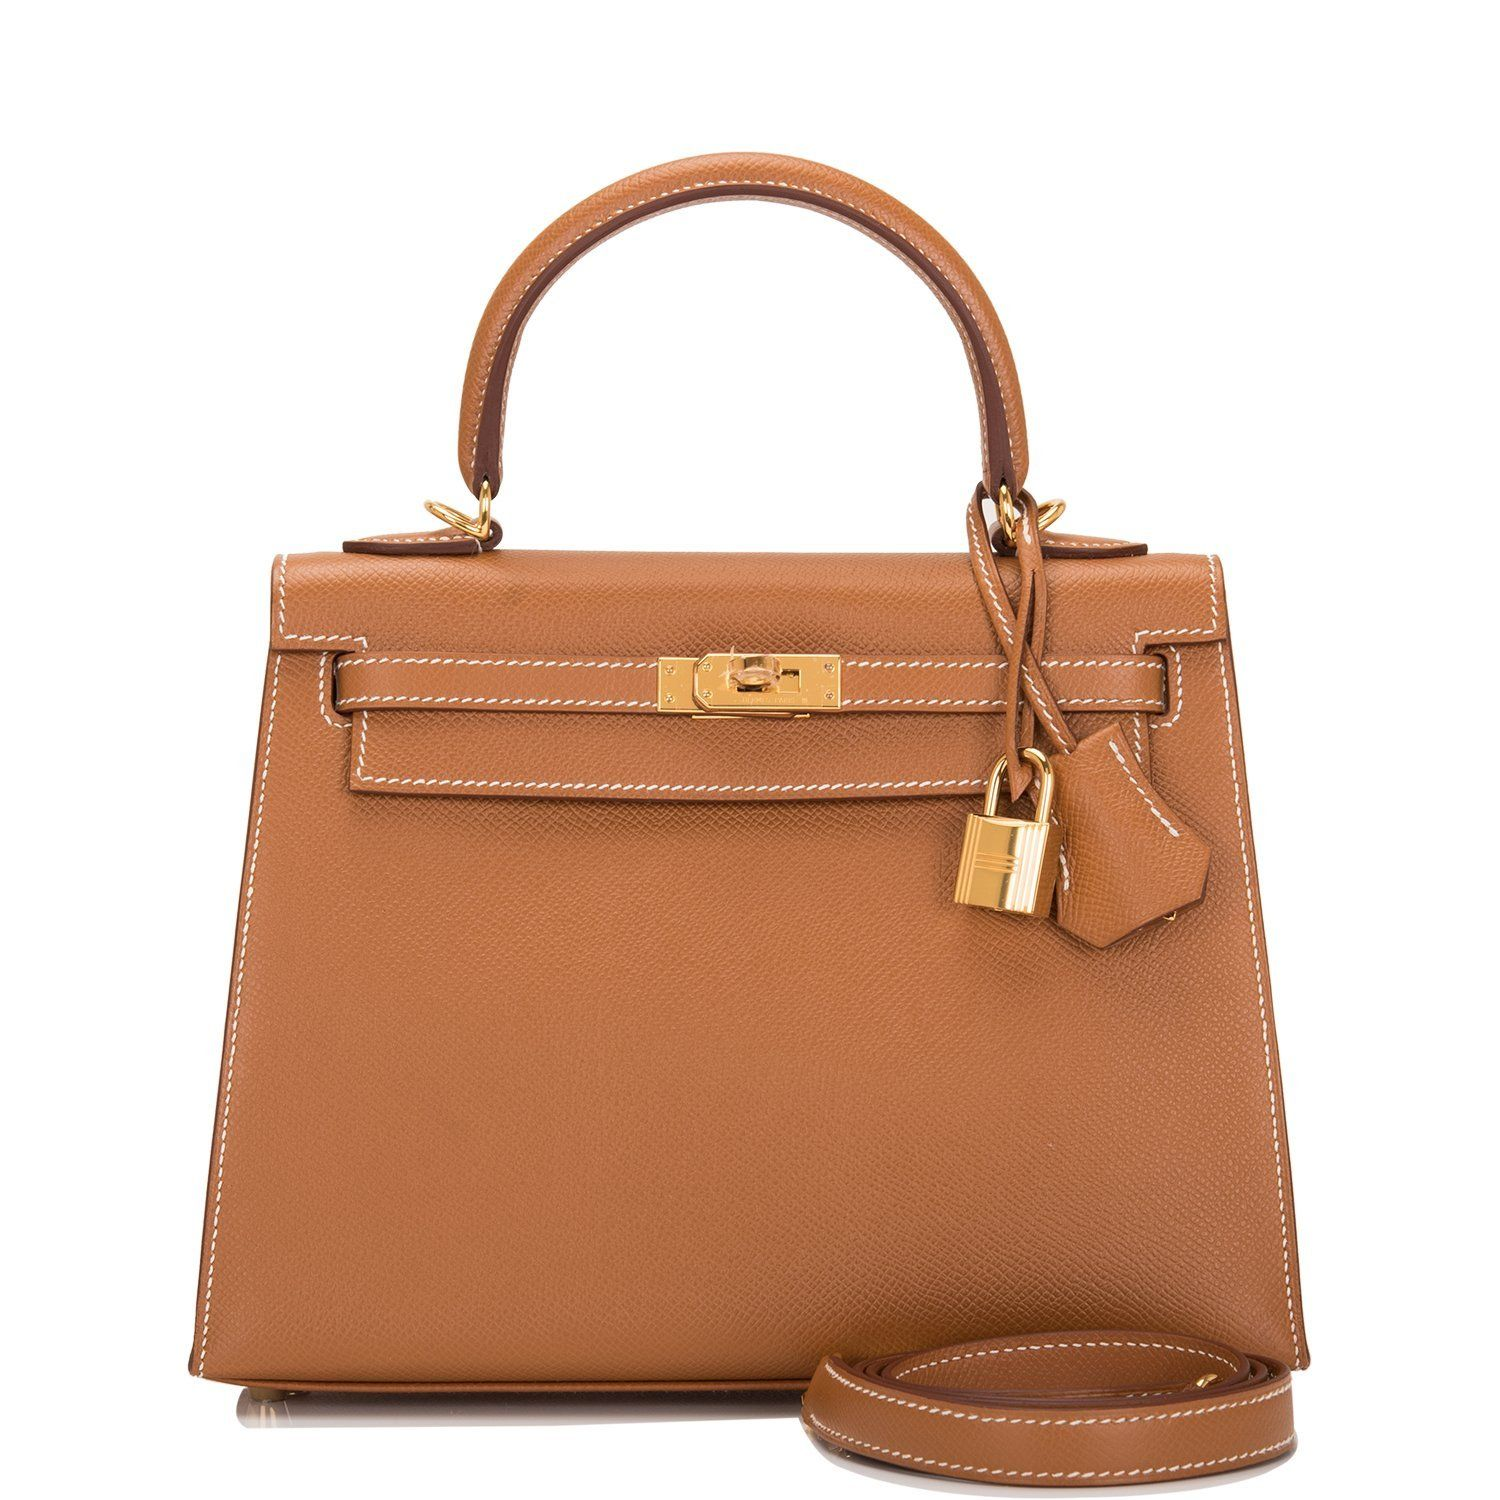 58f871e1c7b8 Hermes Gold Epsom Sellier Kelly 25cm Gold Hardware in 2019 ...